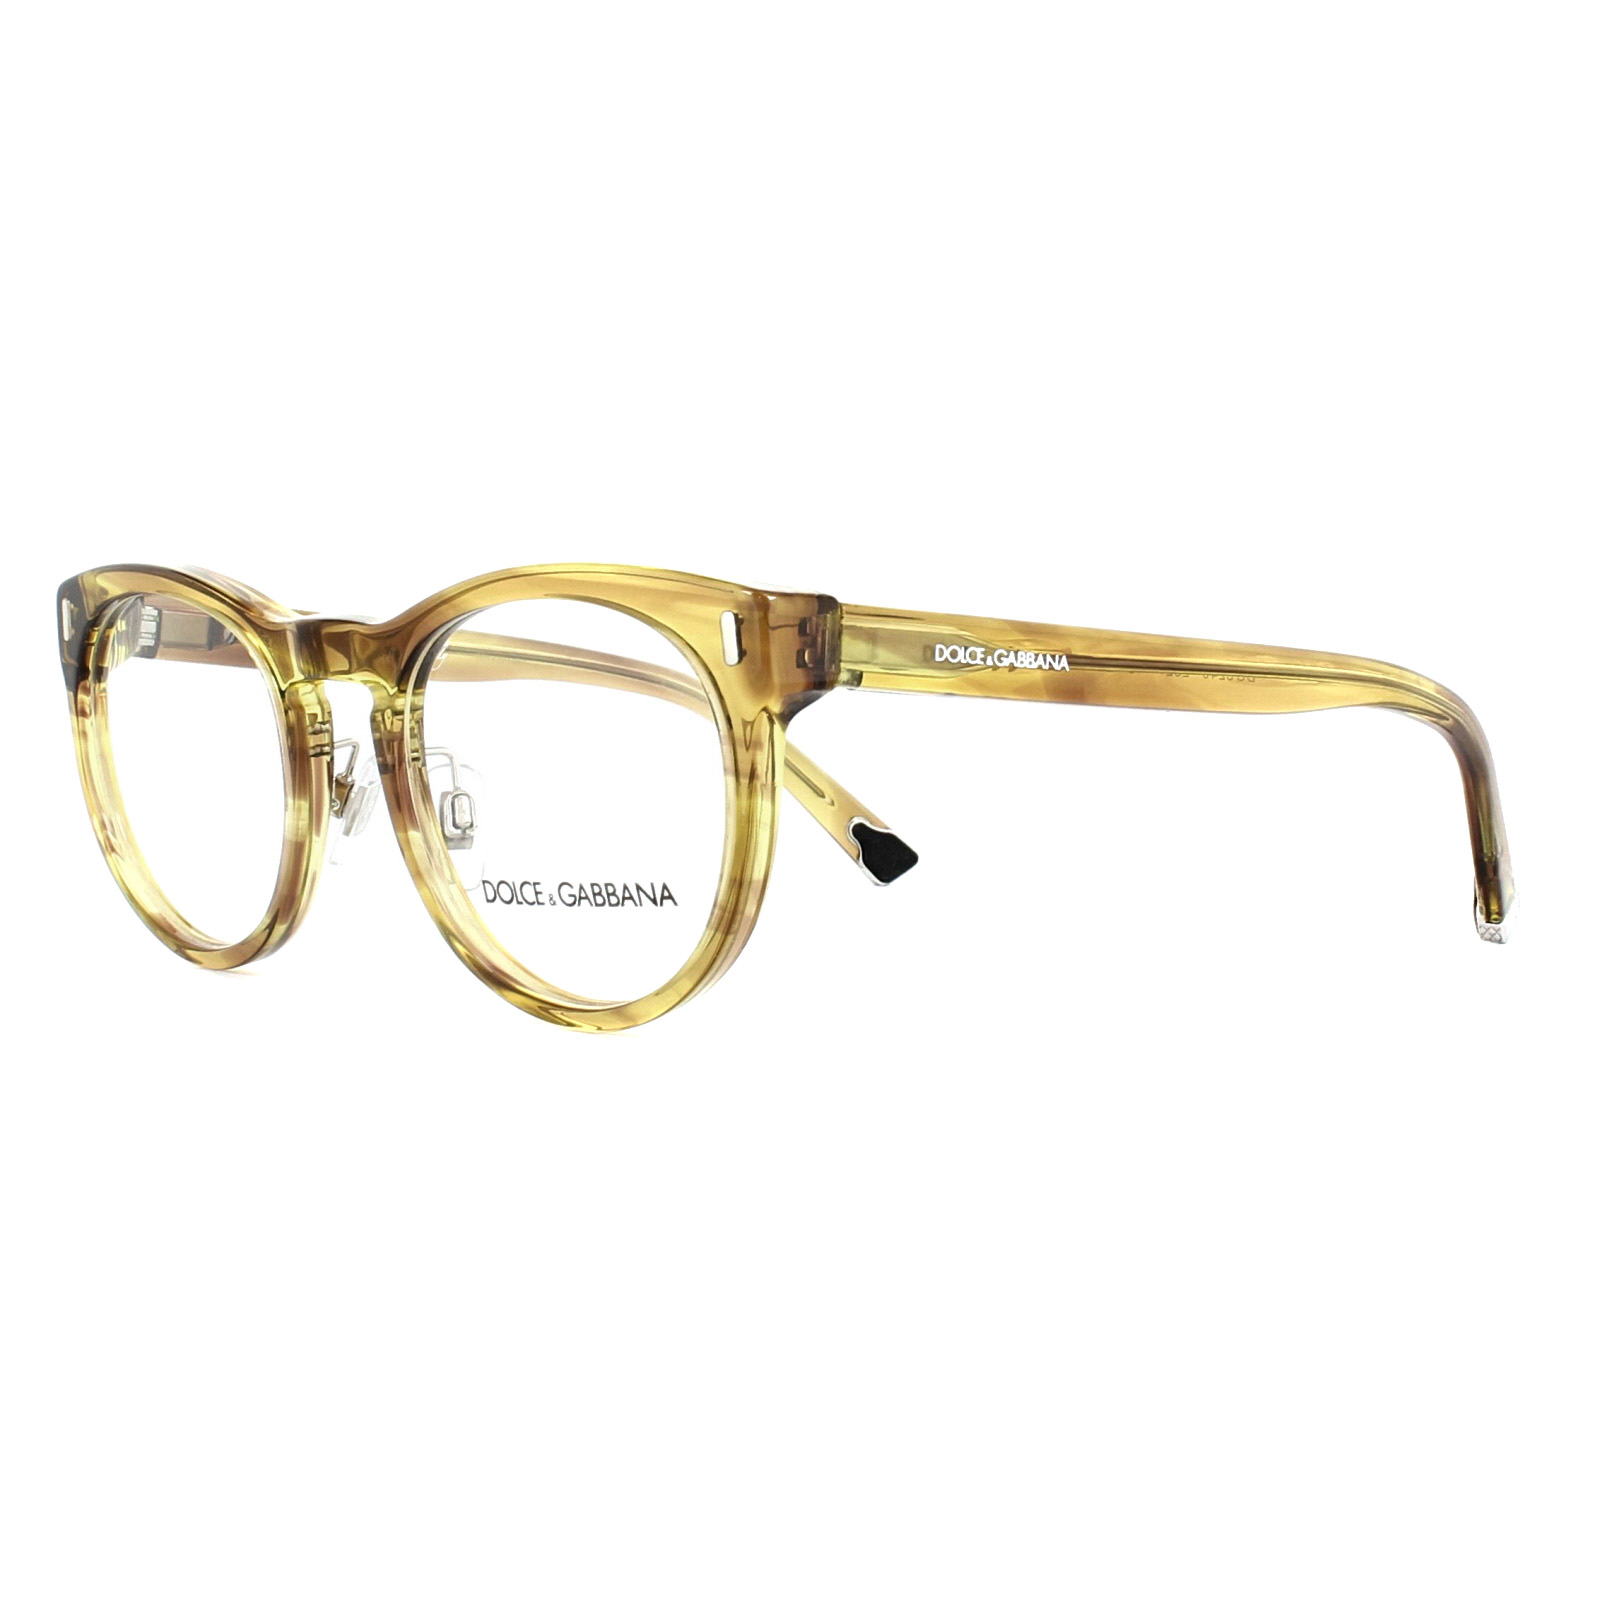 Sentinel Dolce & Gabbana Glasses Frames DG 3240 2927 Striped Honey 49mm Mens